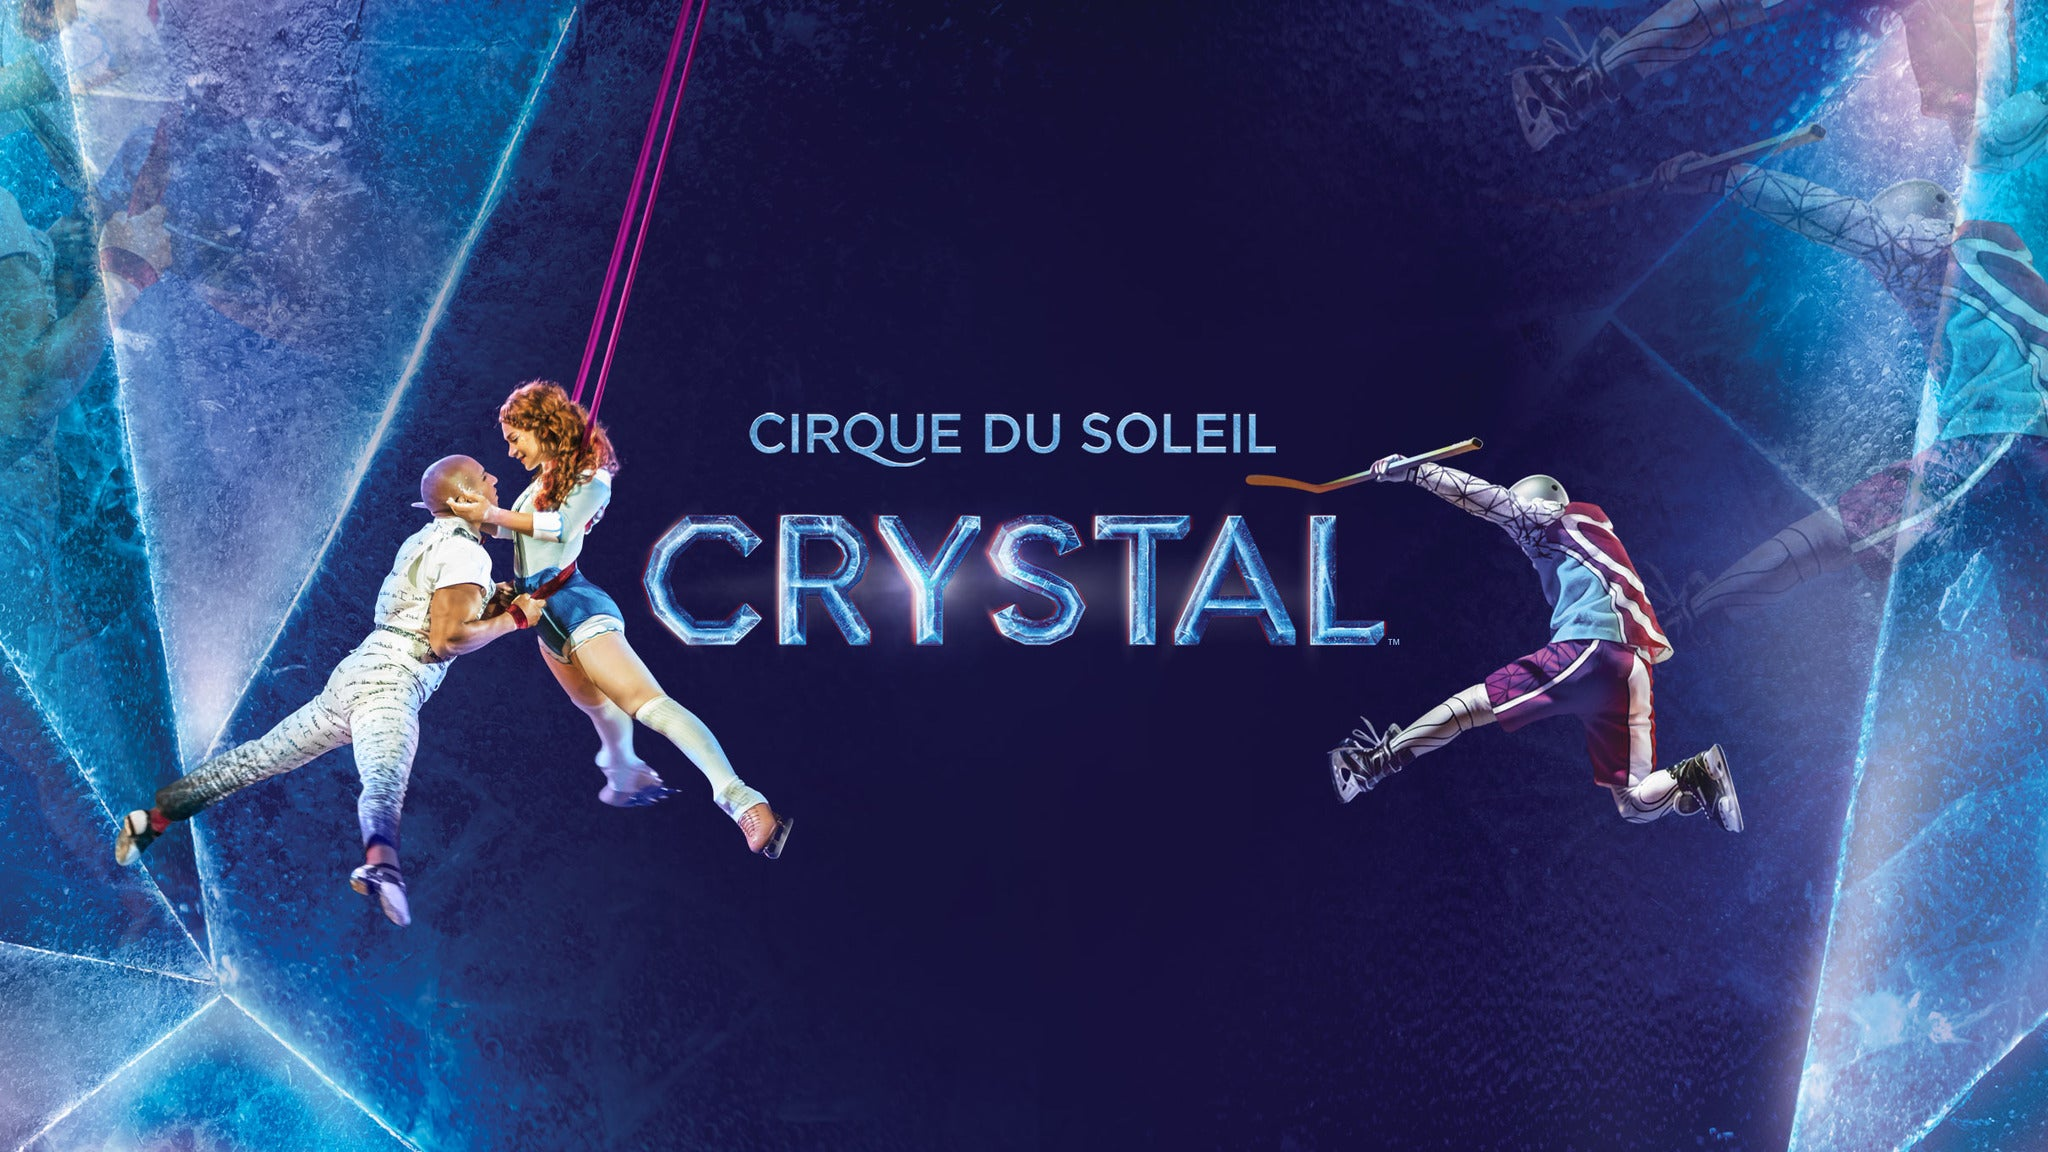 Cirque du Soleil Crystal at Denny Sanford PREMIER Center - Sioux Falls, SD 57104